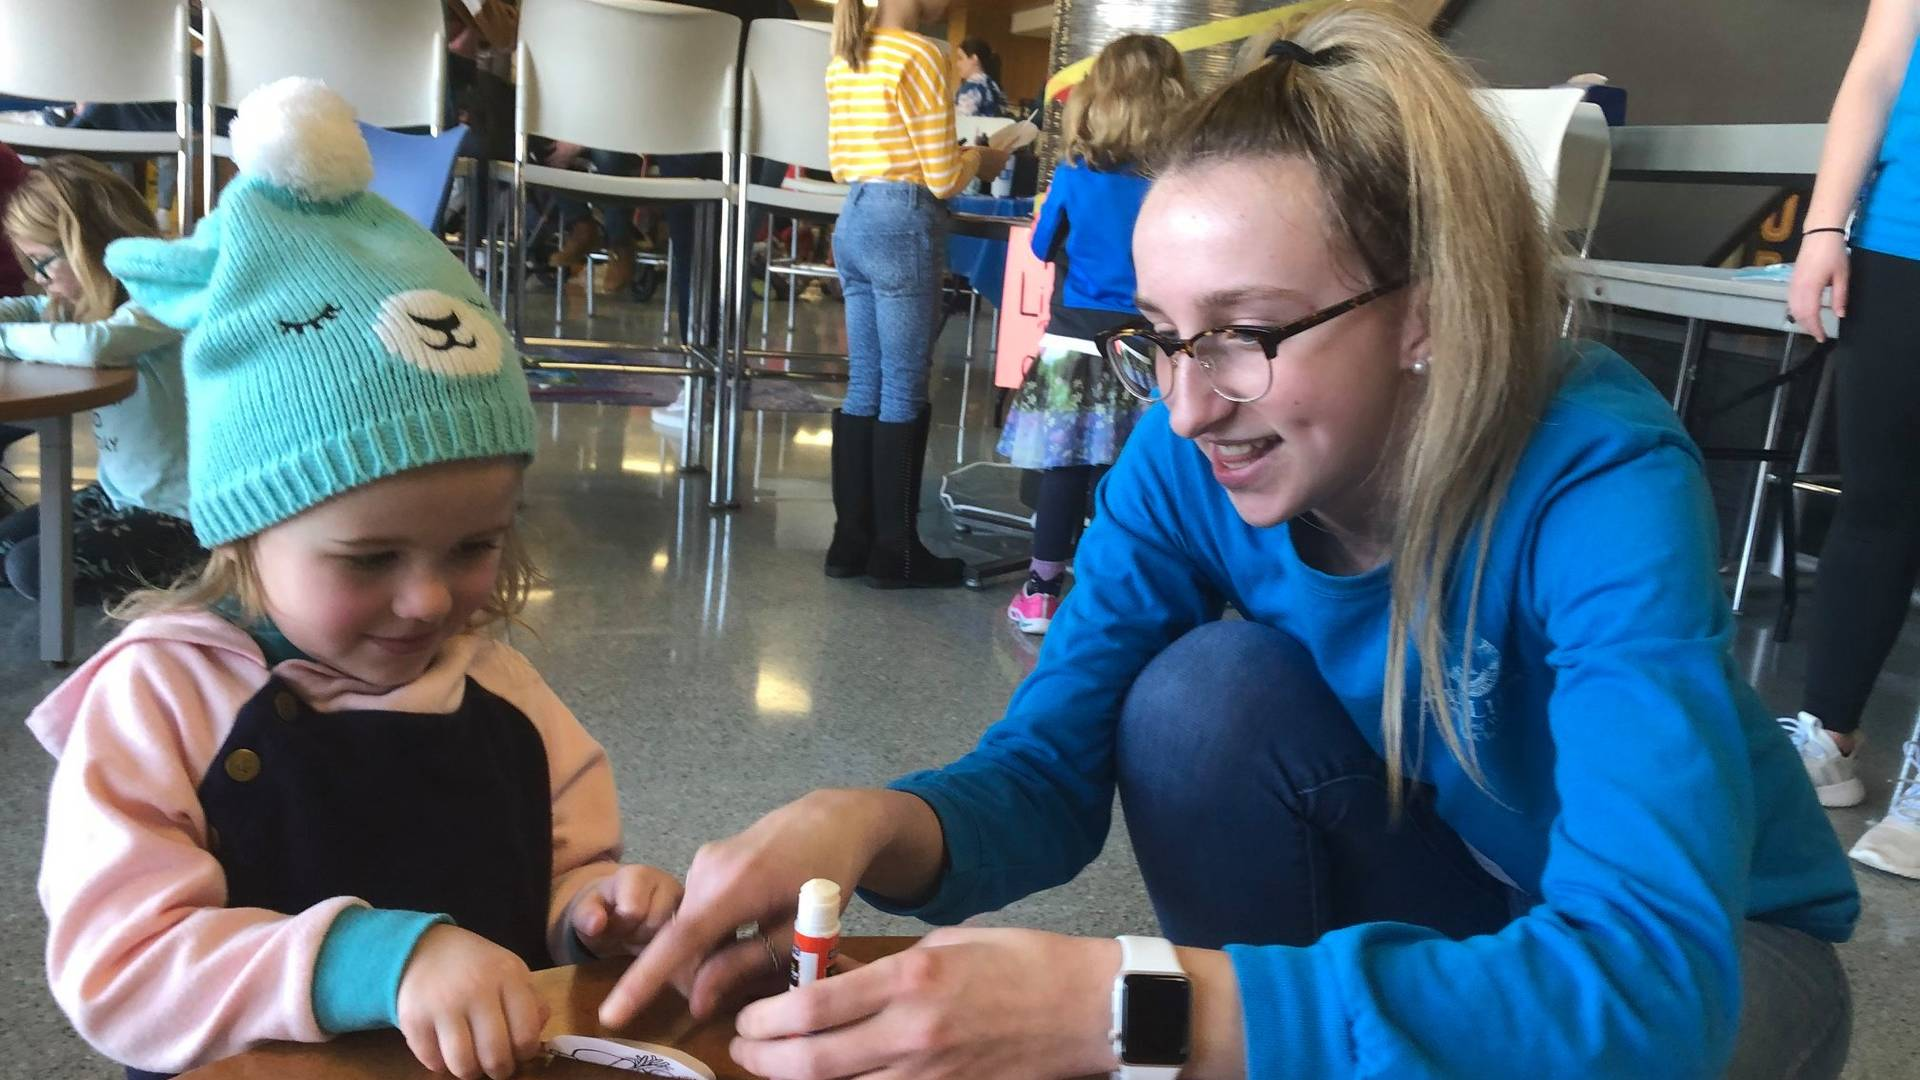 UW-Eau Claire student Allison Mulroy works with a child during an ECLIPSE session.